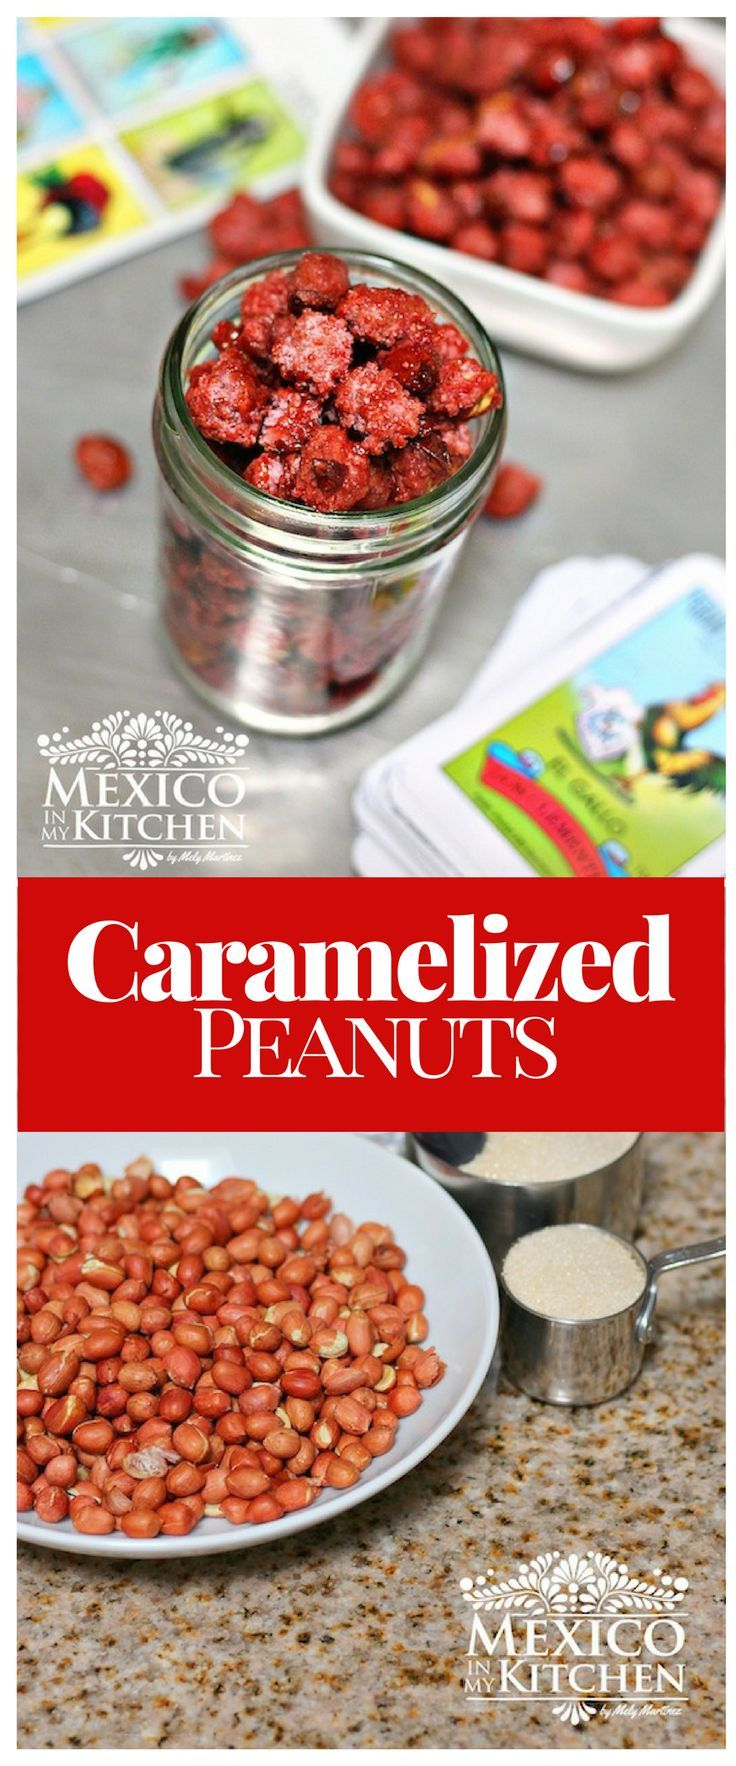 Caramelized or candied peanut are a simple-to-make snack that is sold outside public buildings, sport stadiums, parks and even outside schools all throughout Mexico. #recipe #food #mexican #kitchen